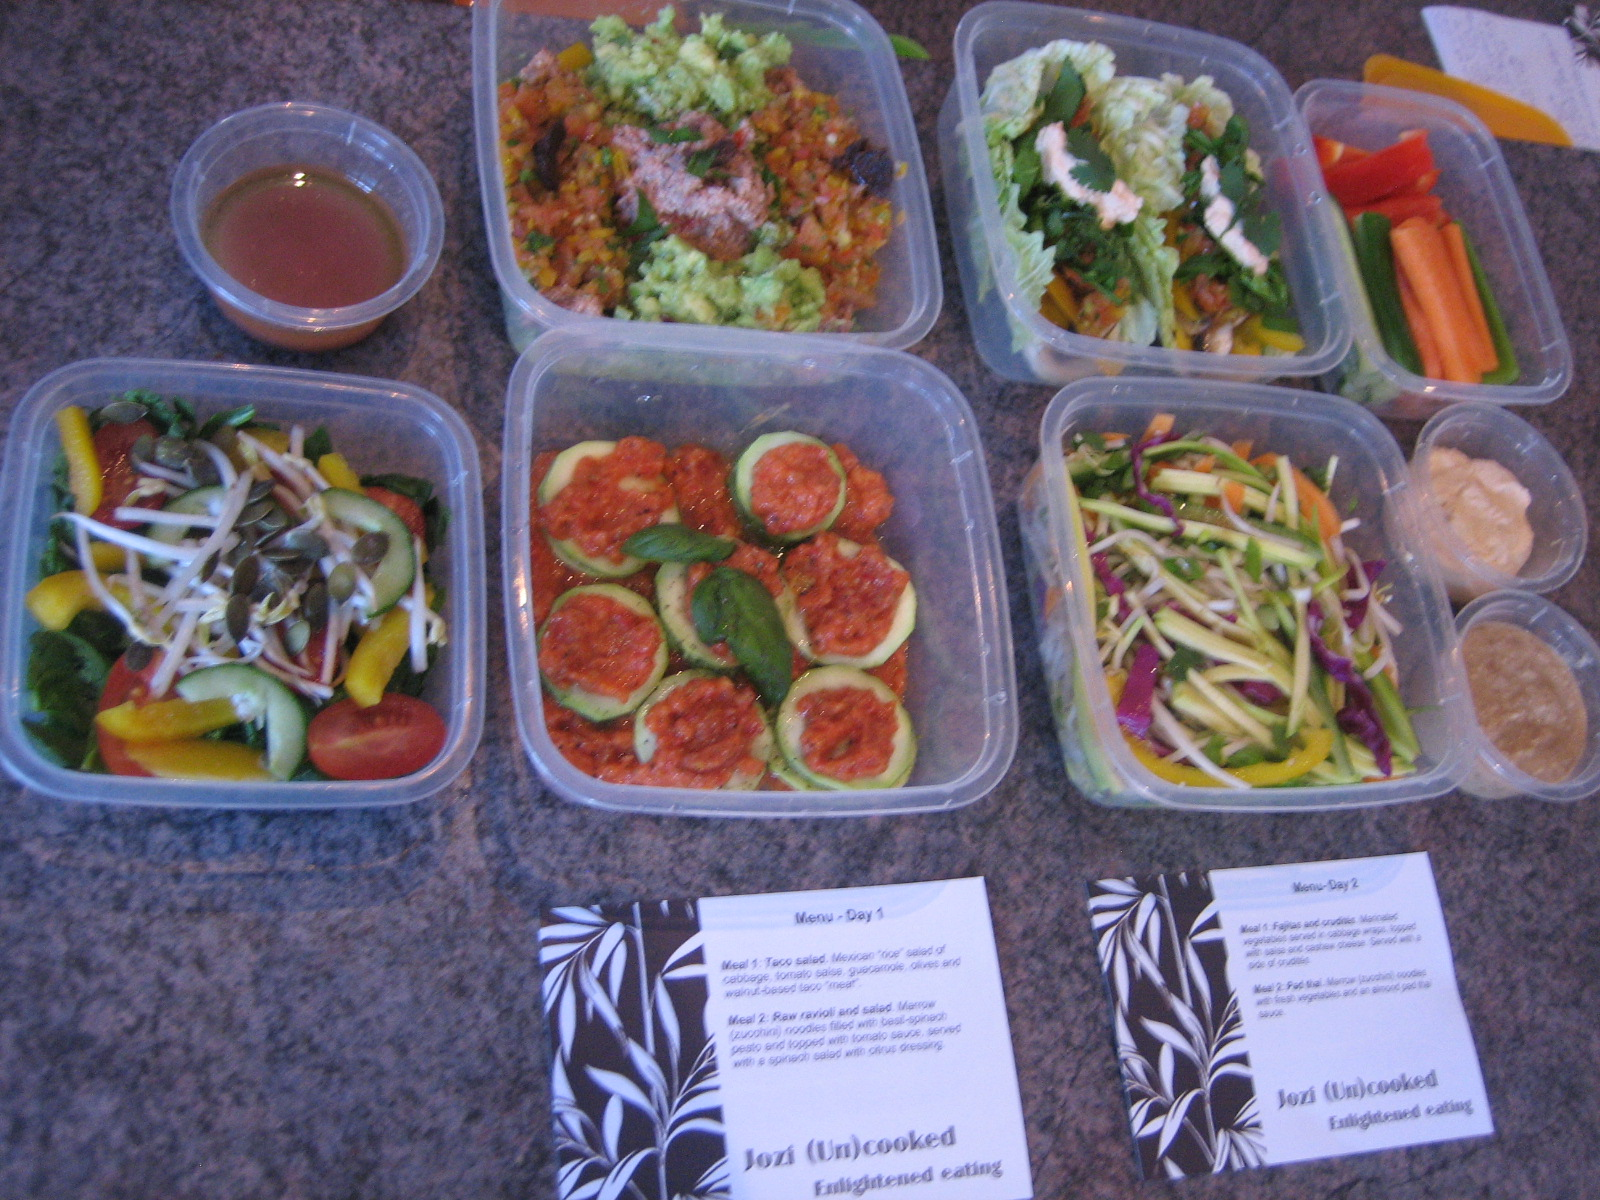 Raw vegan meal plan in pictures  Jozi Uncooked: Johannesburg39;s